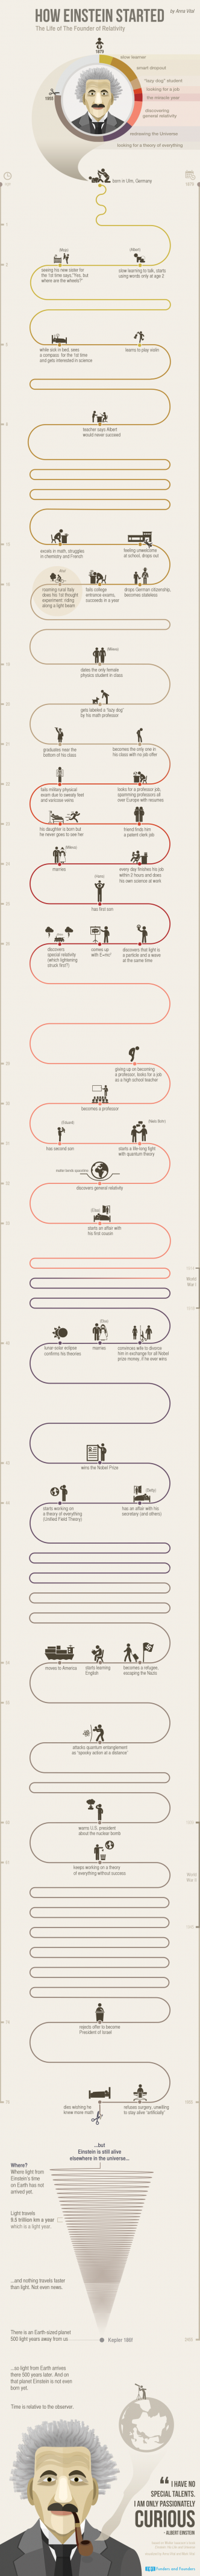 how Albert Einstein started infographic